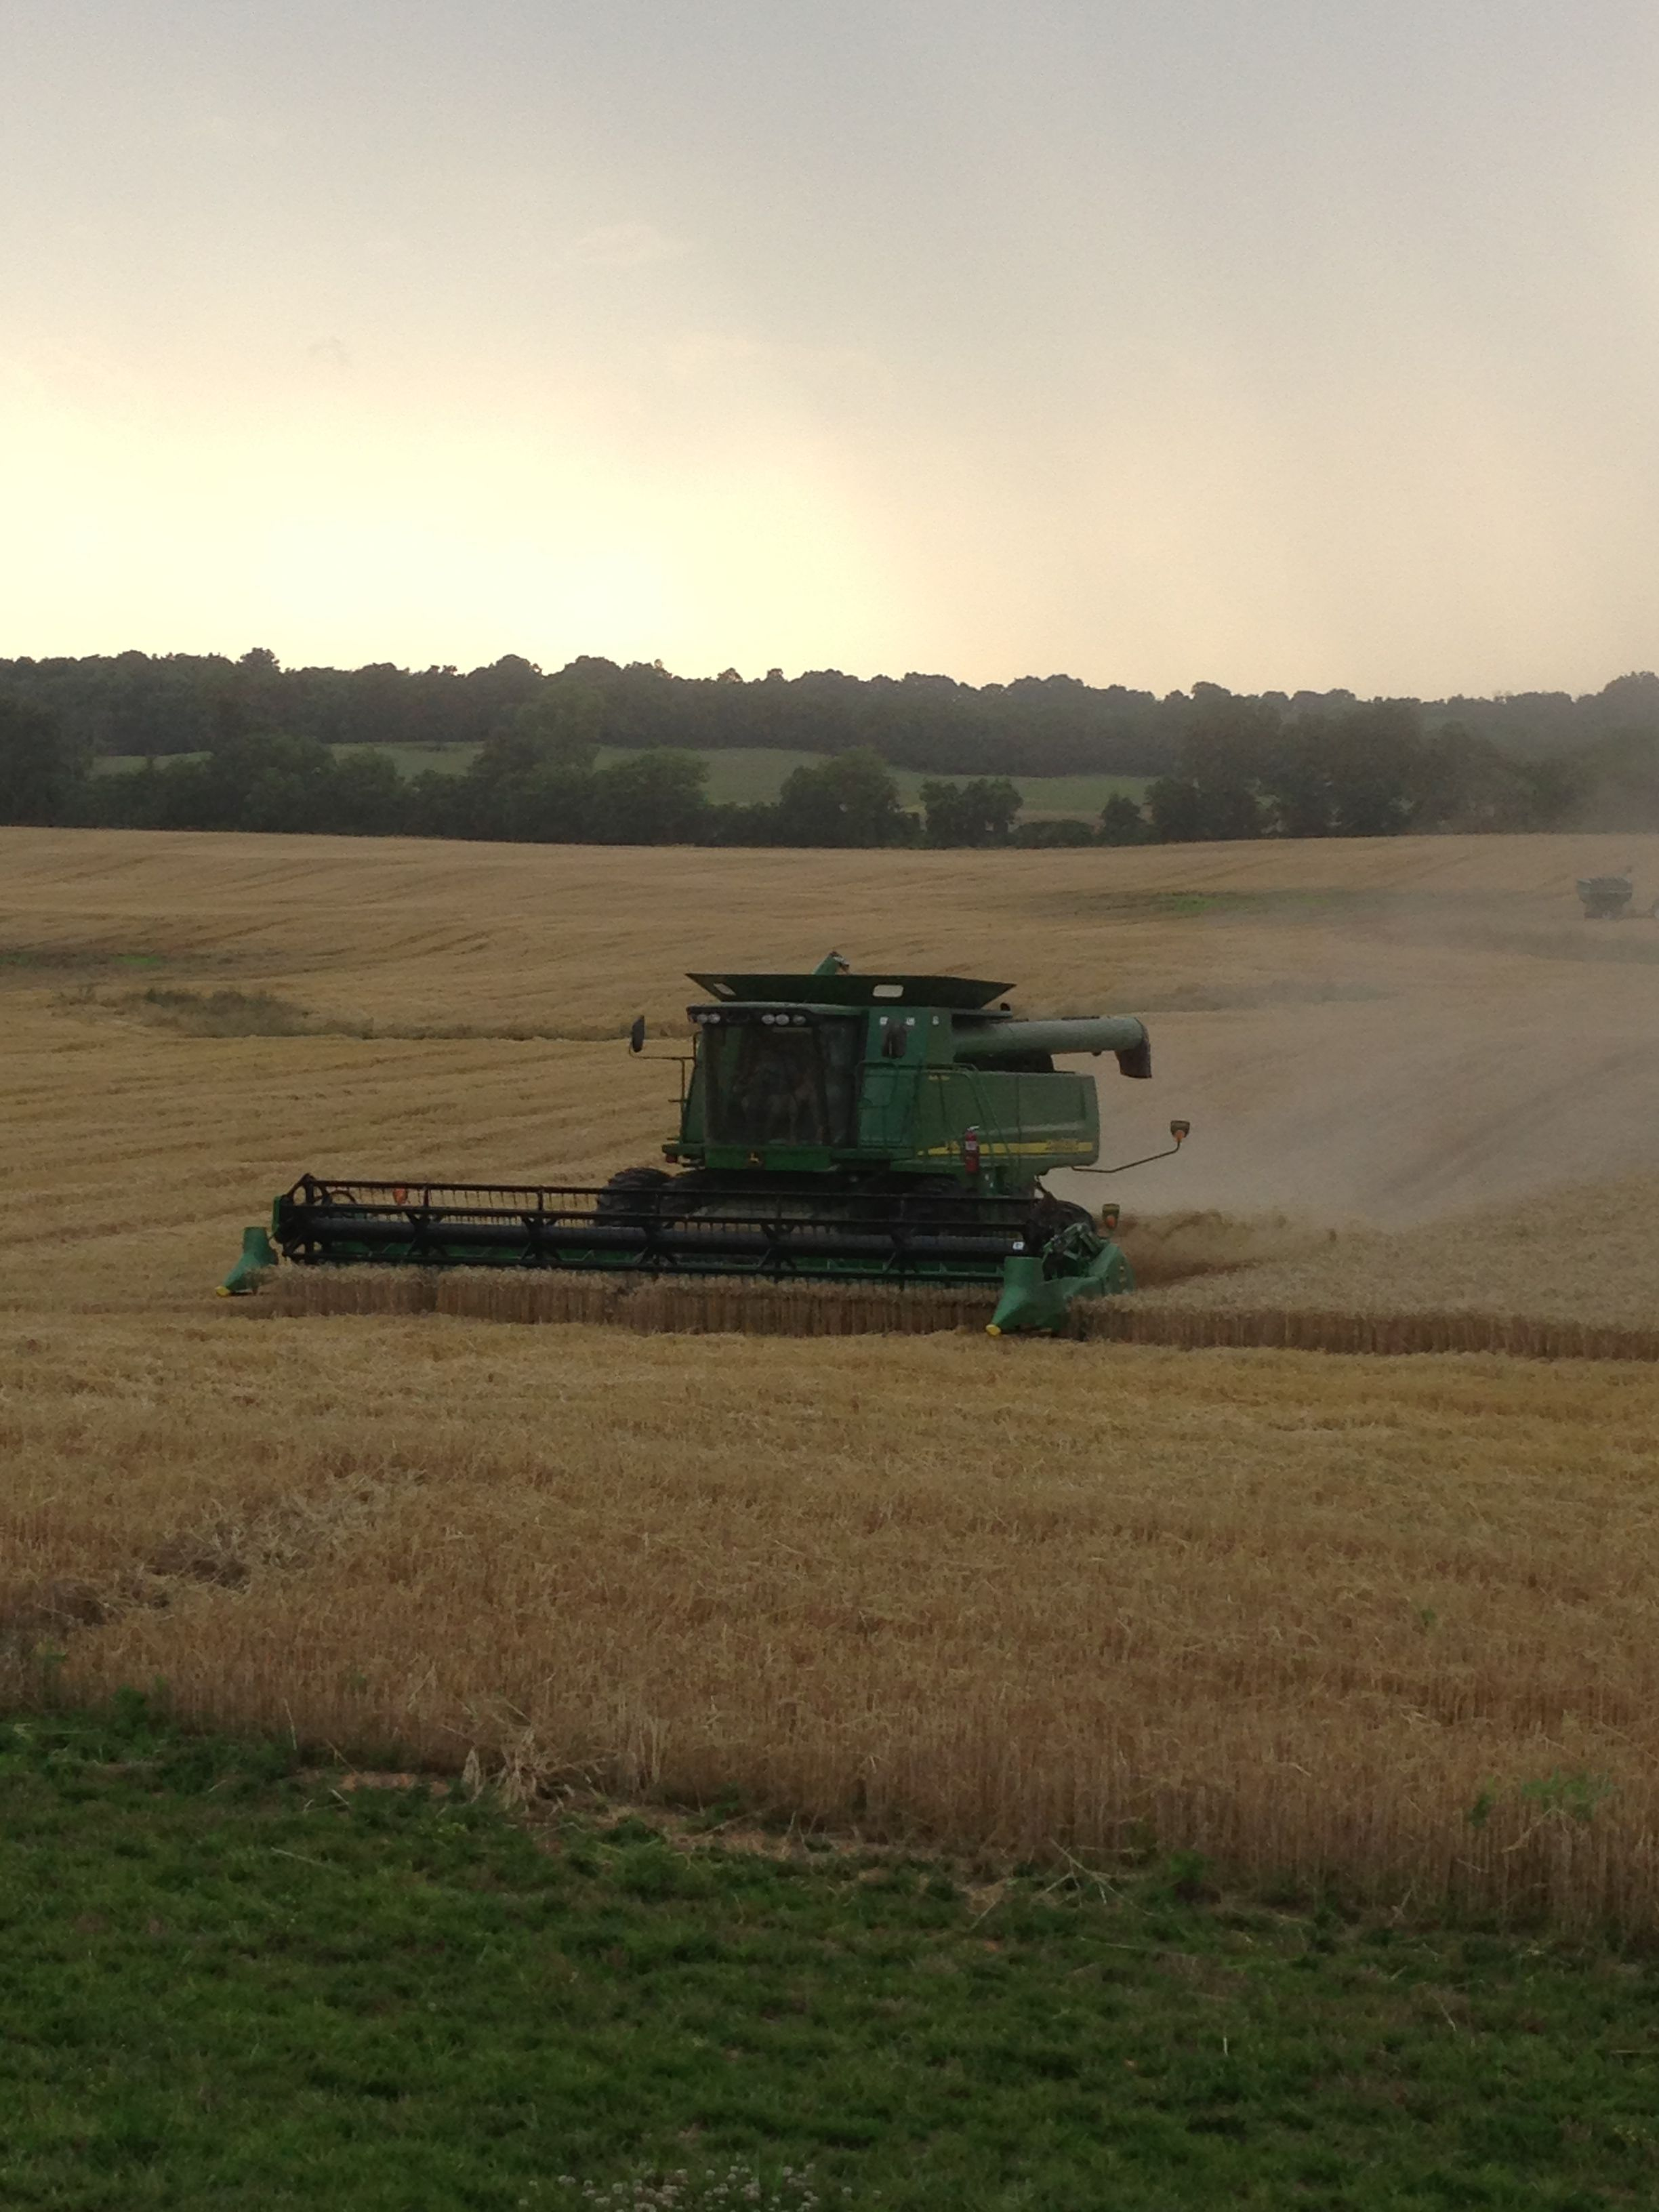 Harvesting wheat with a John Deere